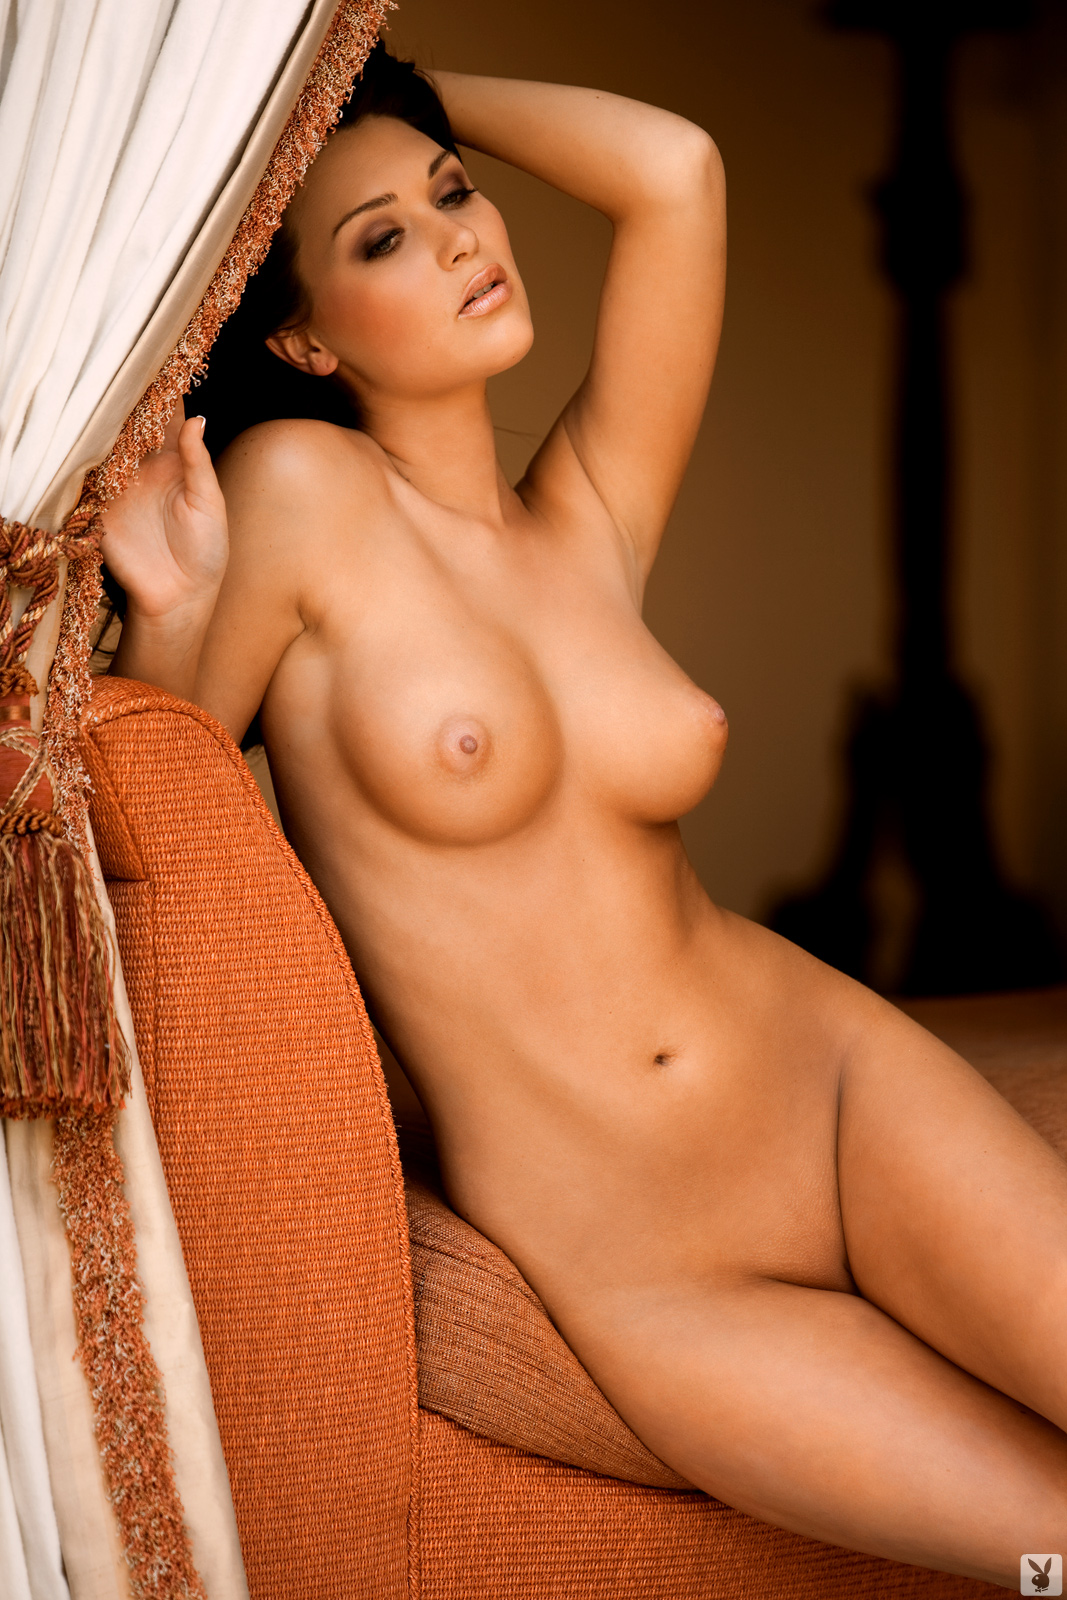 full-nude-chick